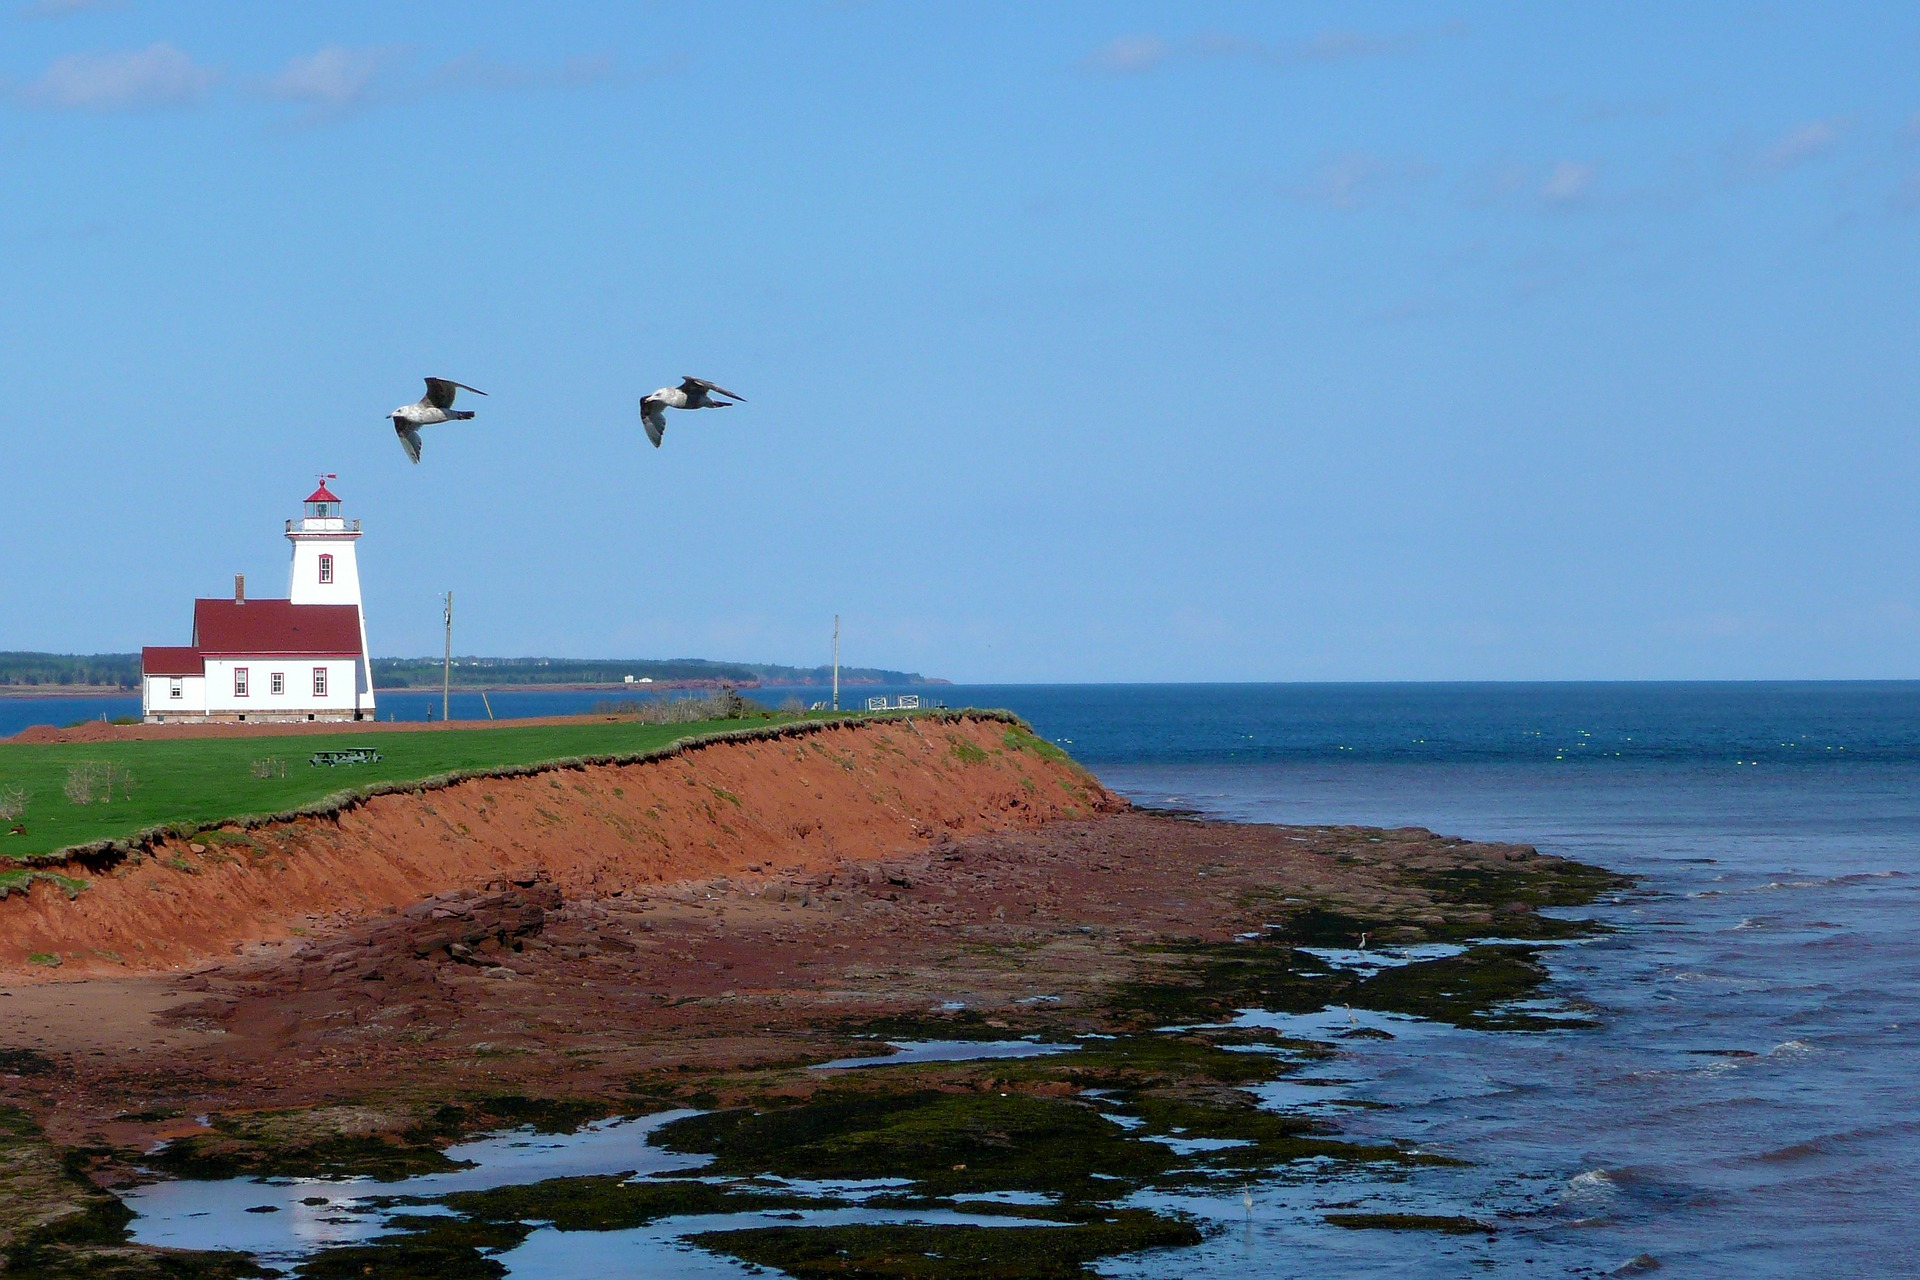 Landscapes of the Canadian Maritimes | Prince Edward Island, Canada